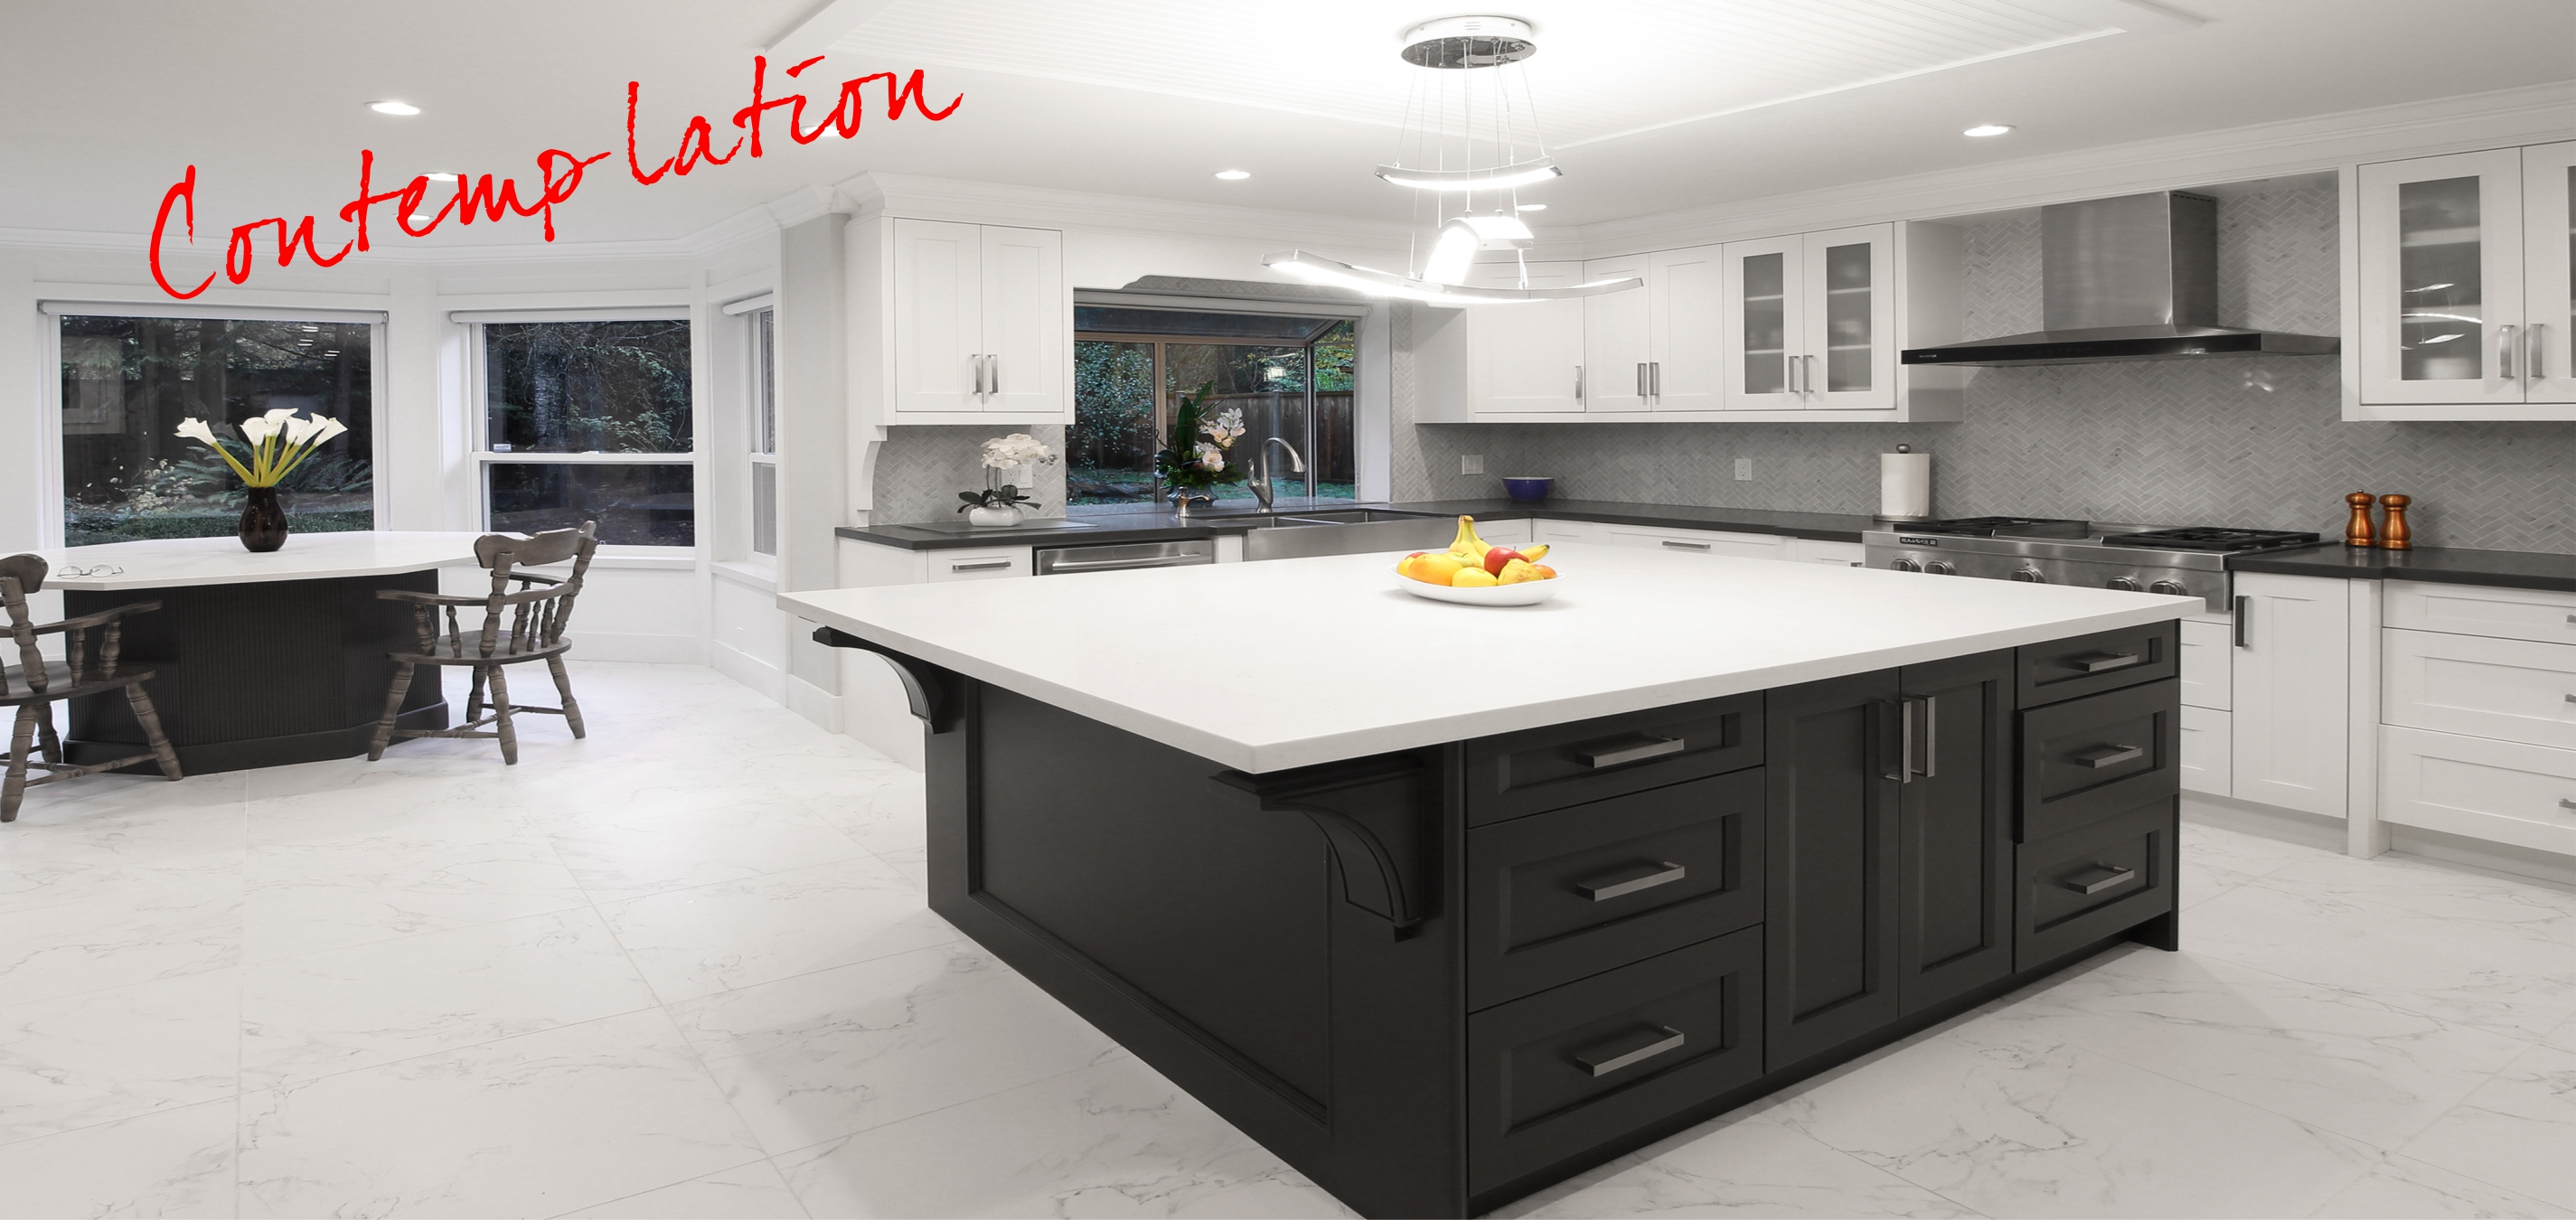 Contemp Lation Ultimate Kitchens Magazine: ultimate kitchens